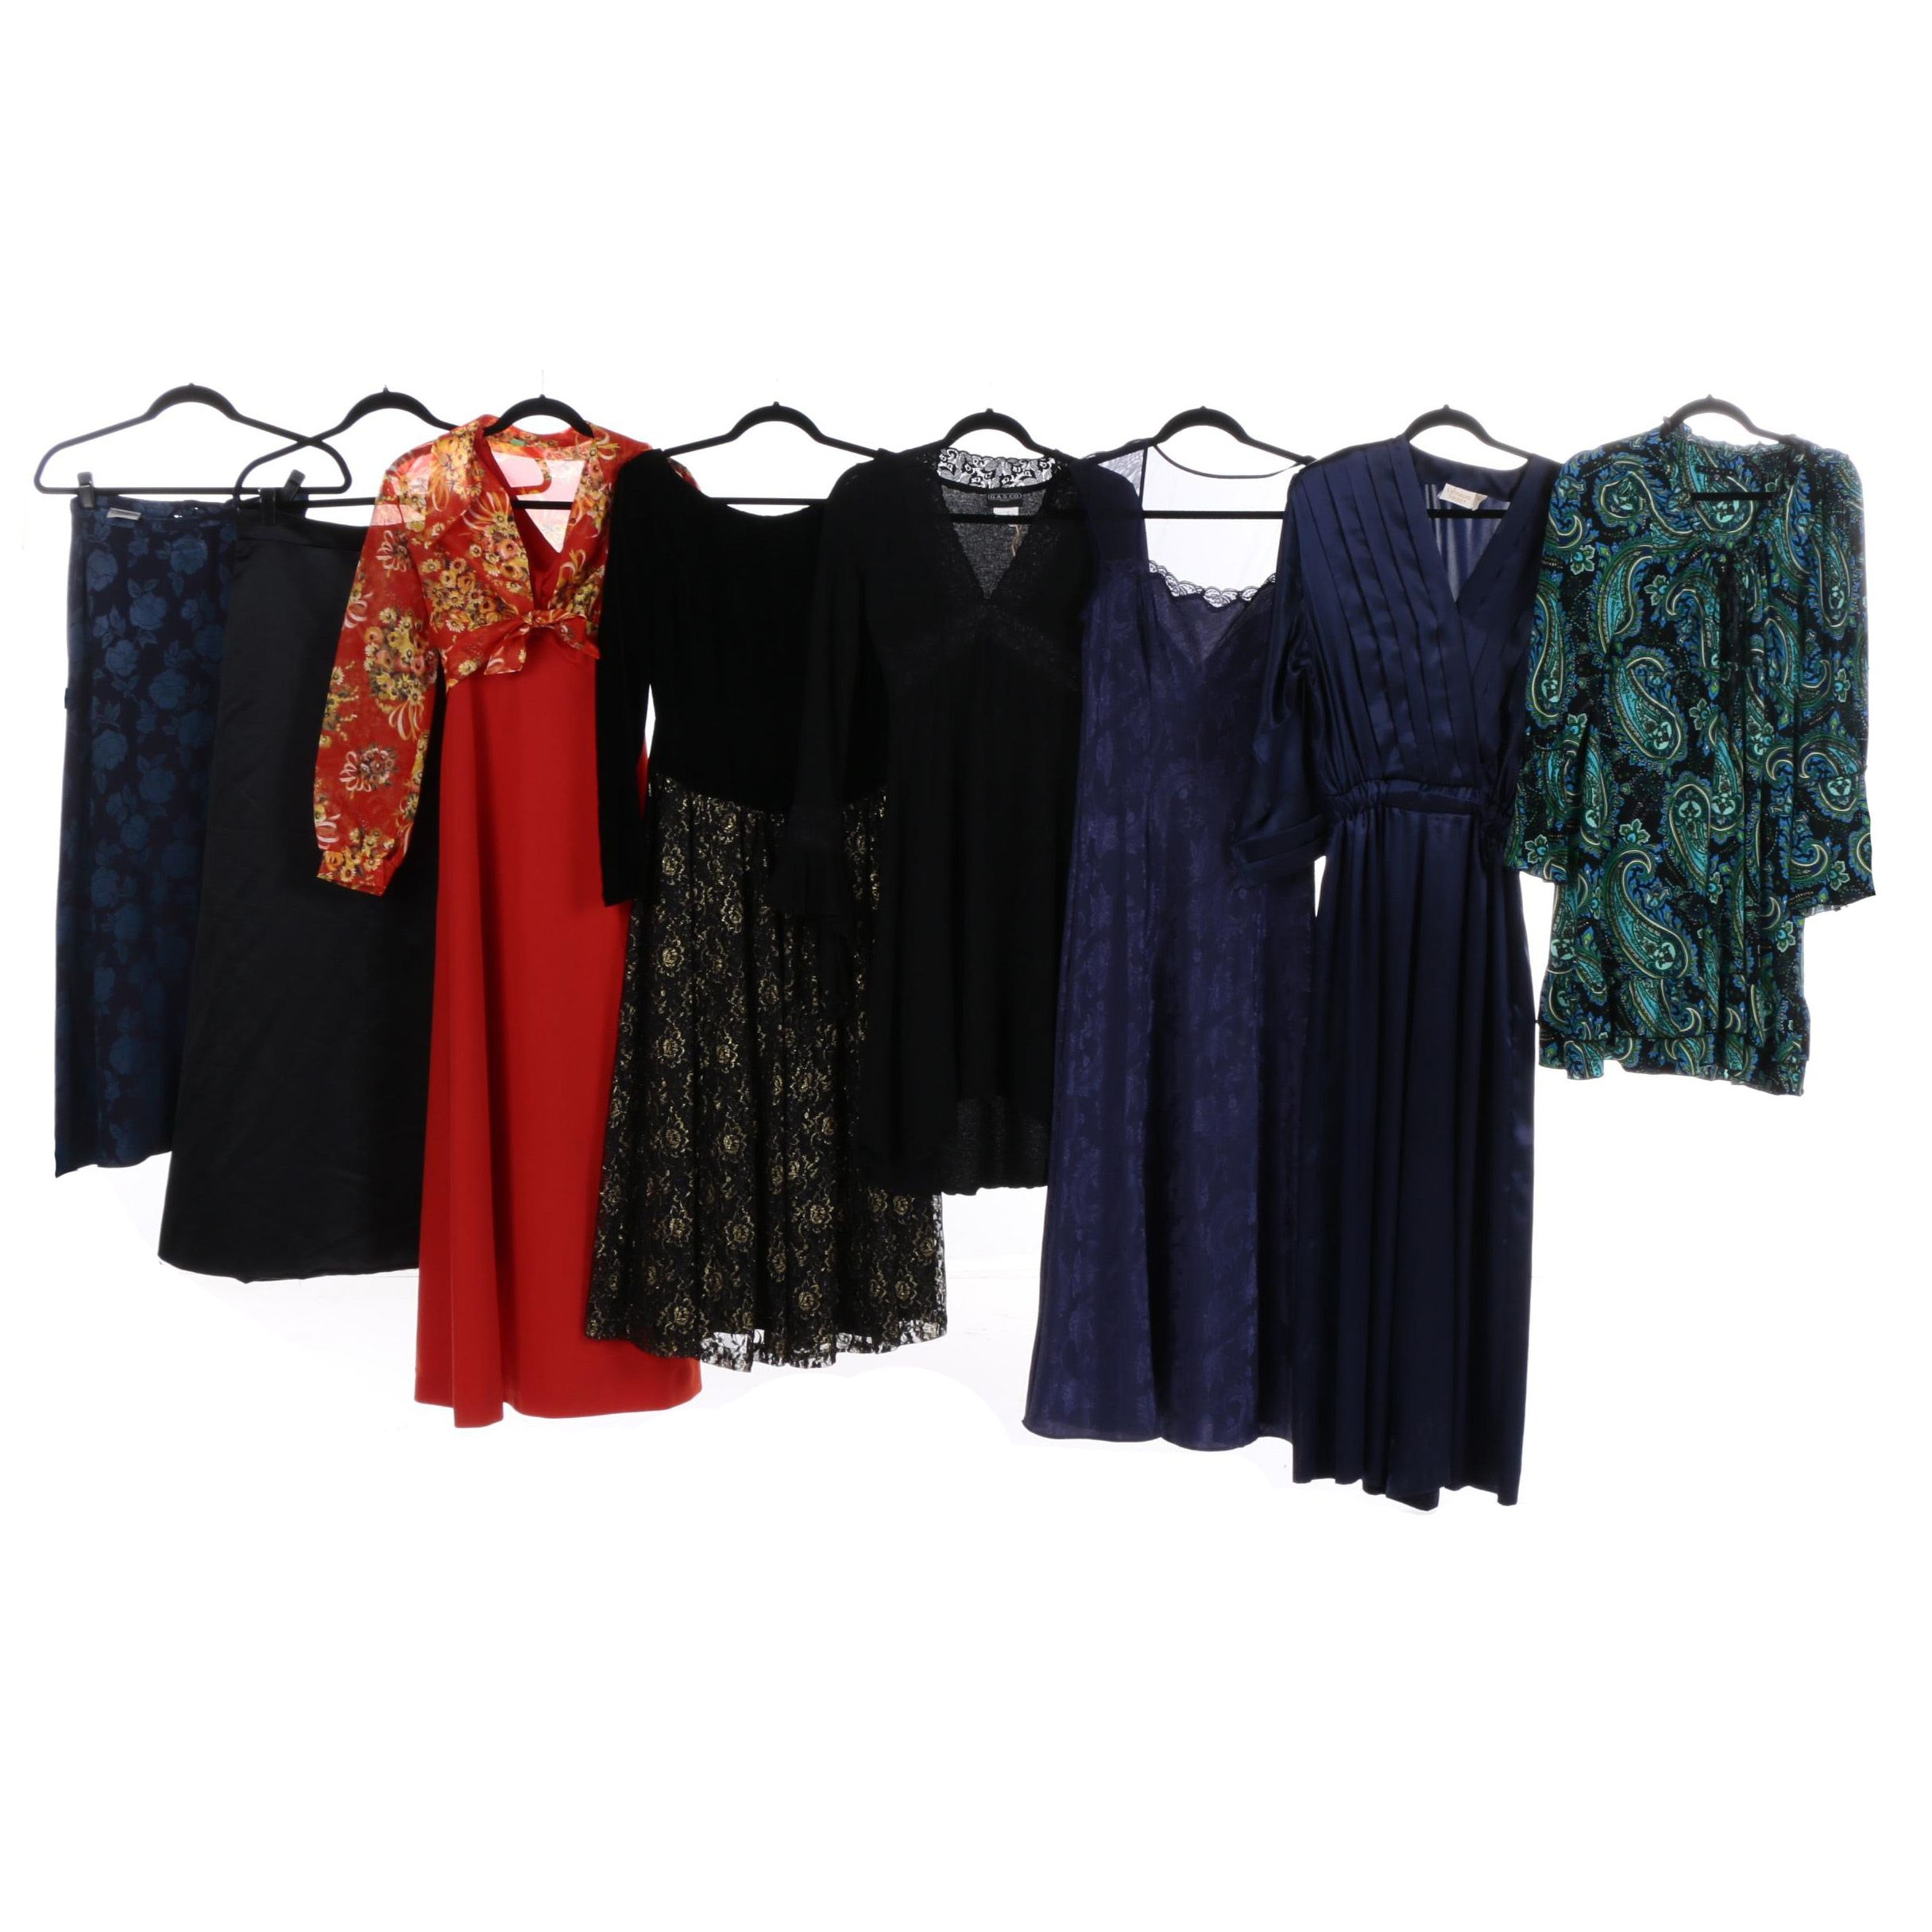 Women's Dresses Including Vintage and Laura Ashley